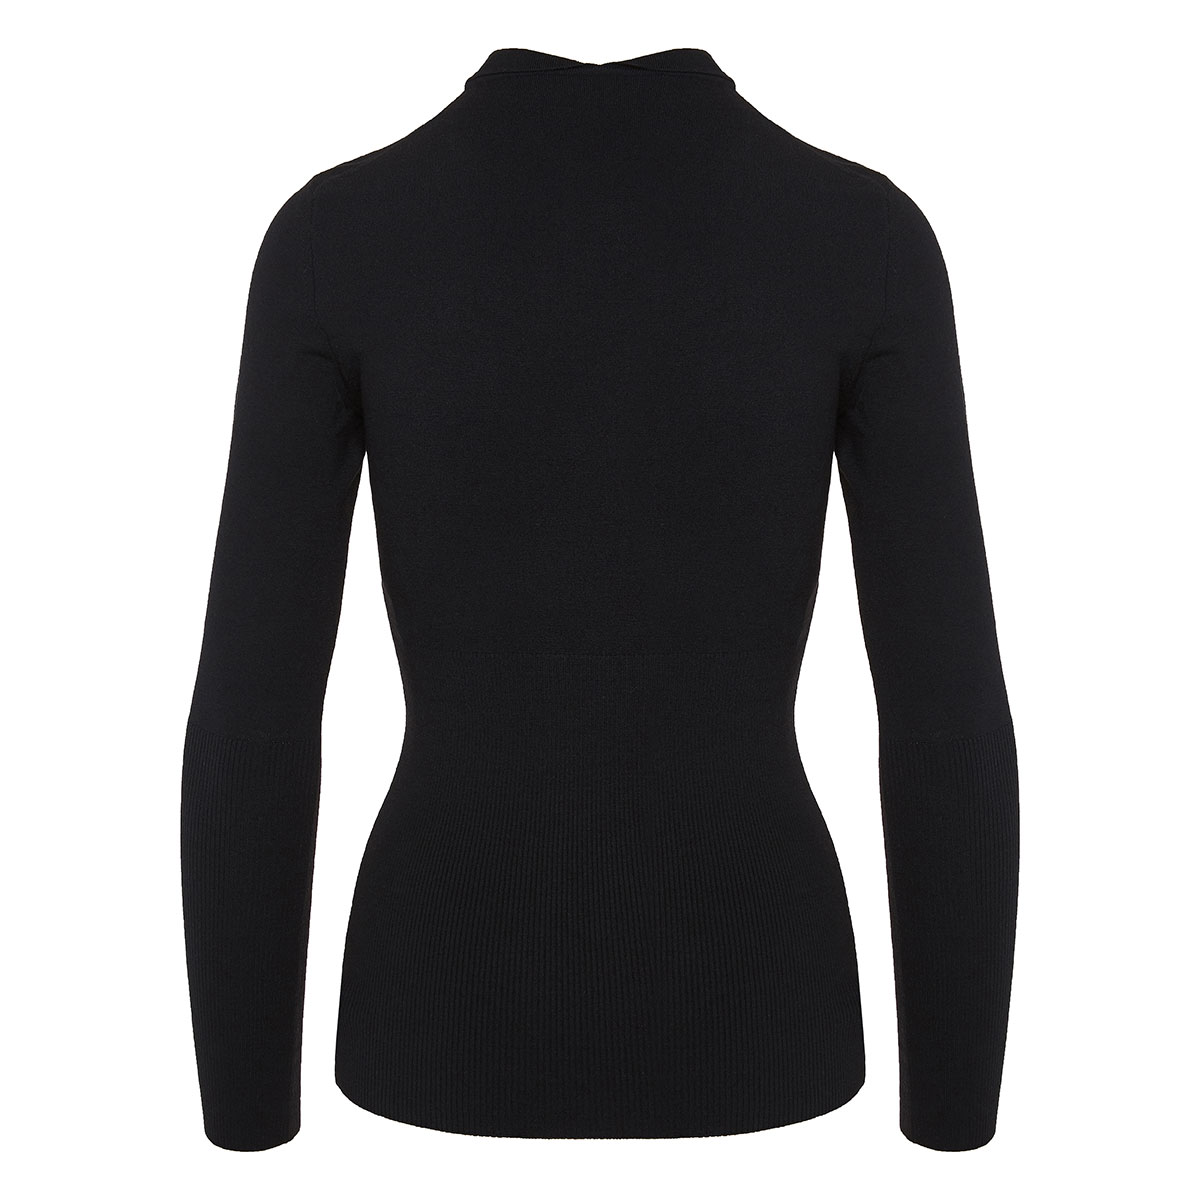 Wool blouse with collar